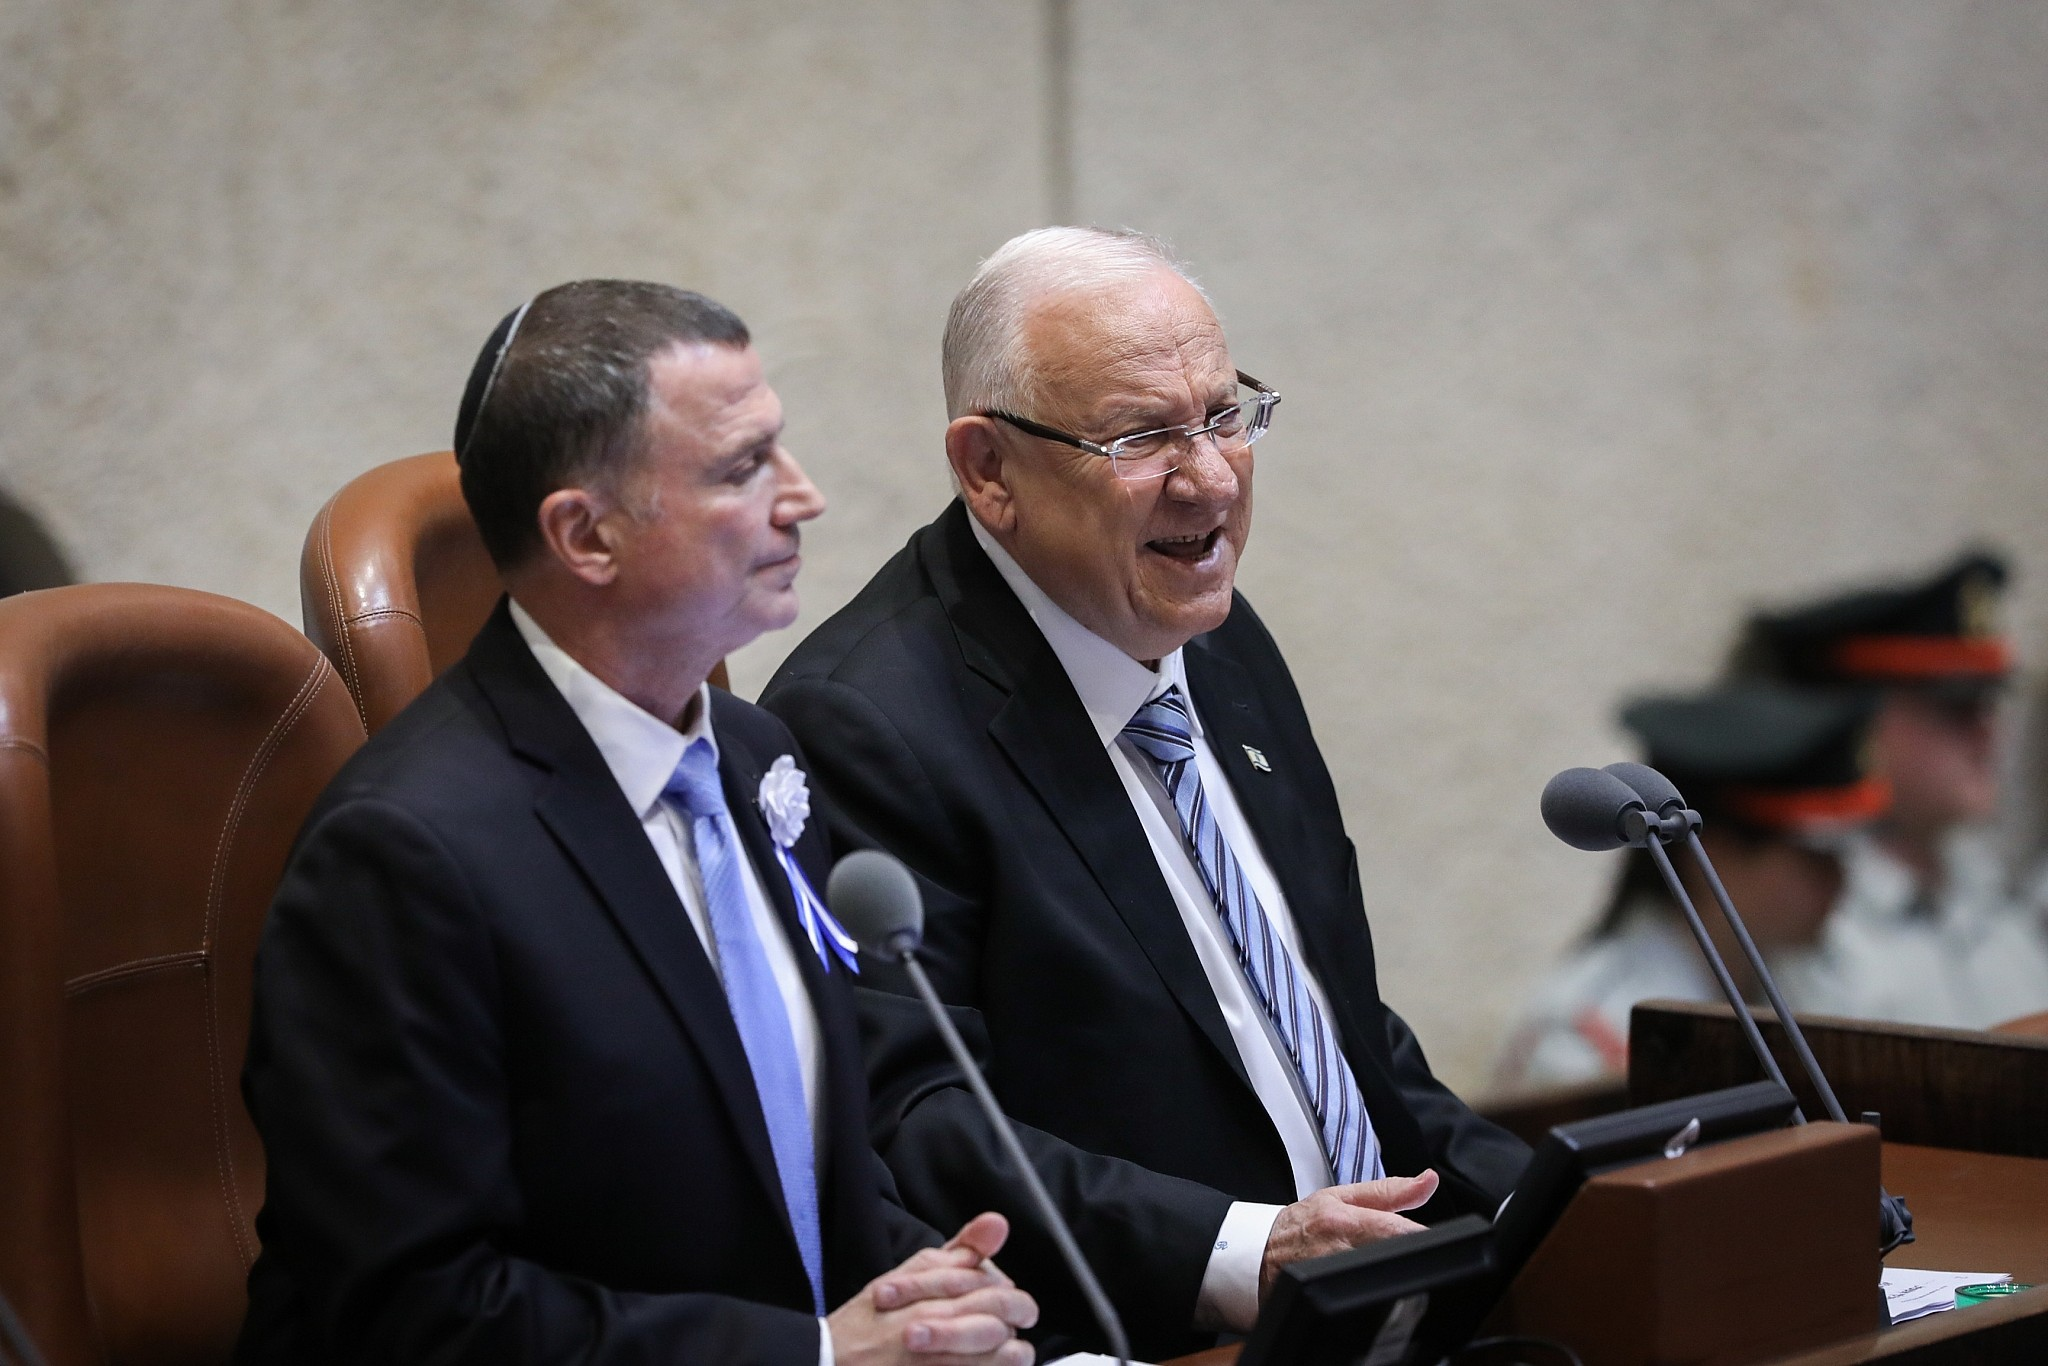 Opening Knesset after bitter election, Rivlin tells MKs to